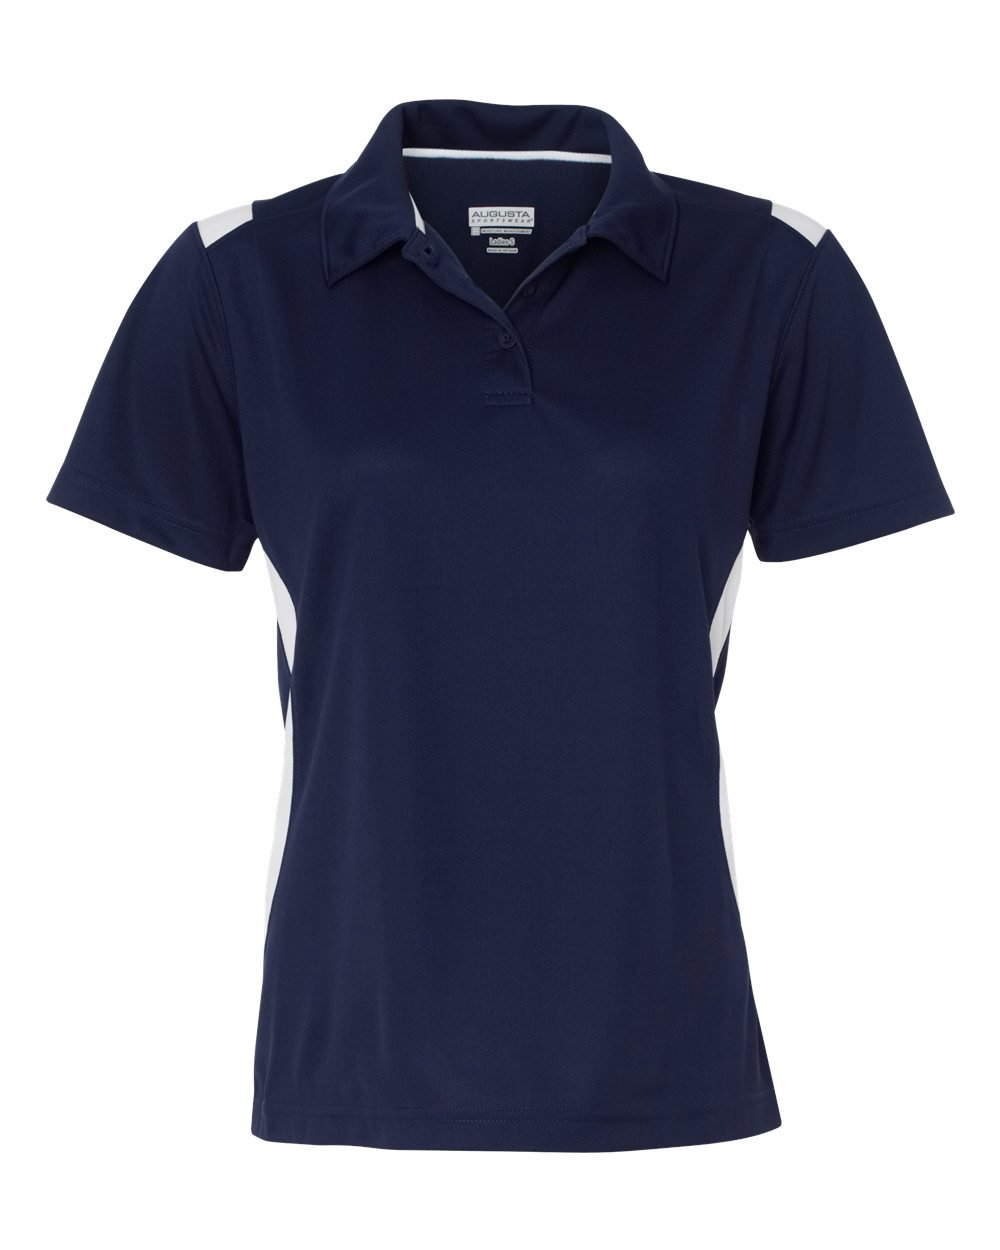 Augusta Ladies' All-Conference Sport Shirt S NAVY/WHITE